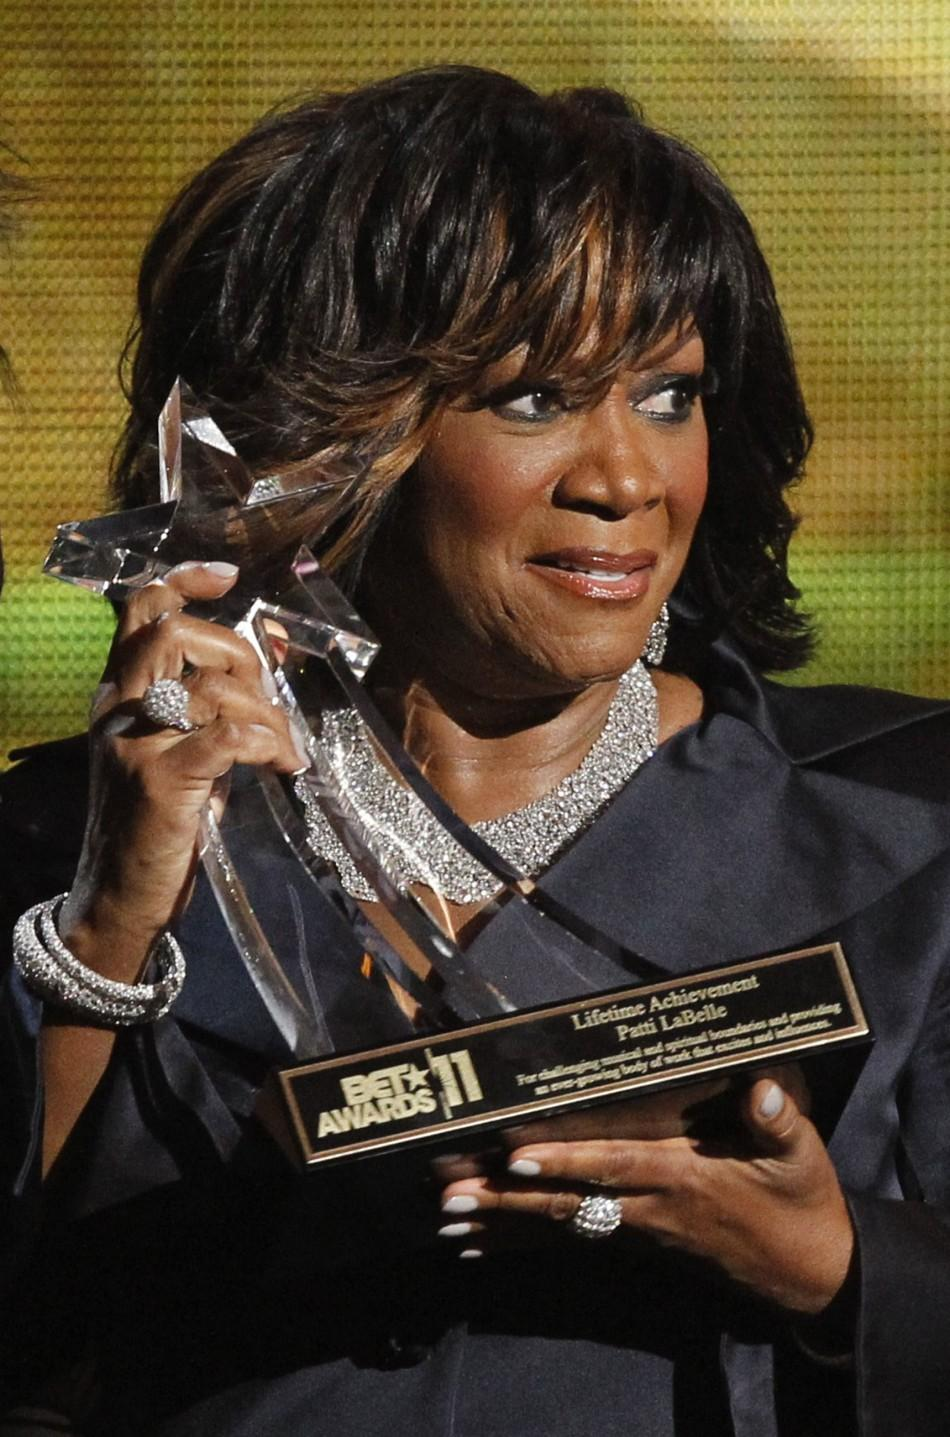 Patti labelle on bet awards 2021 biggest bet on maywether mcgregor fight